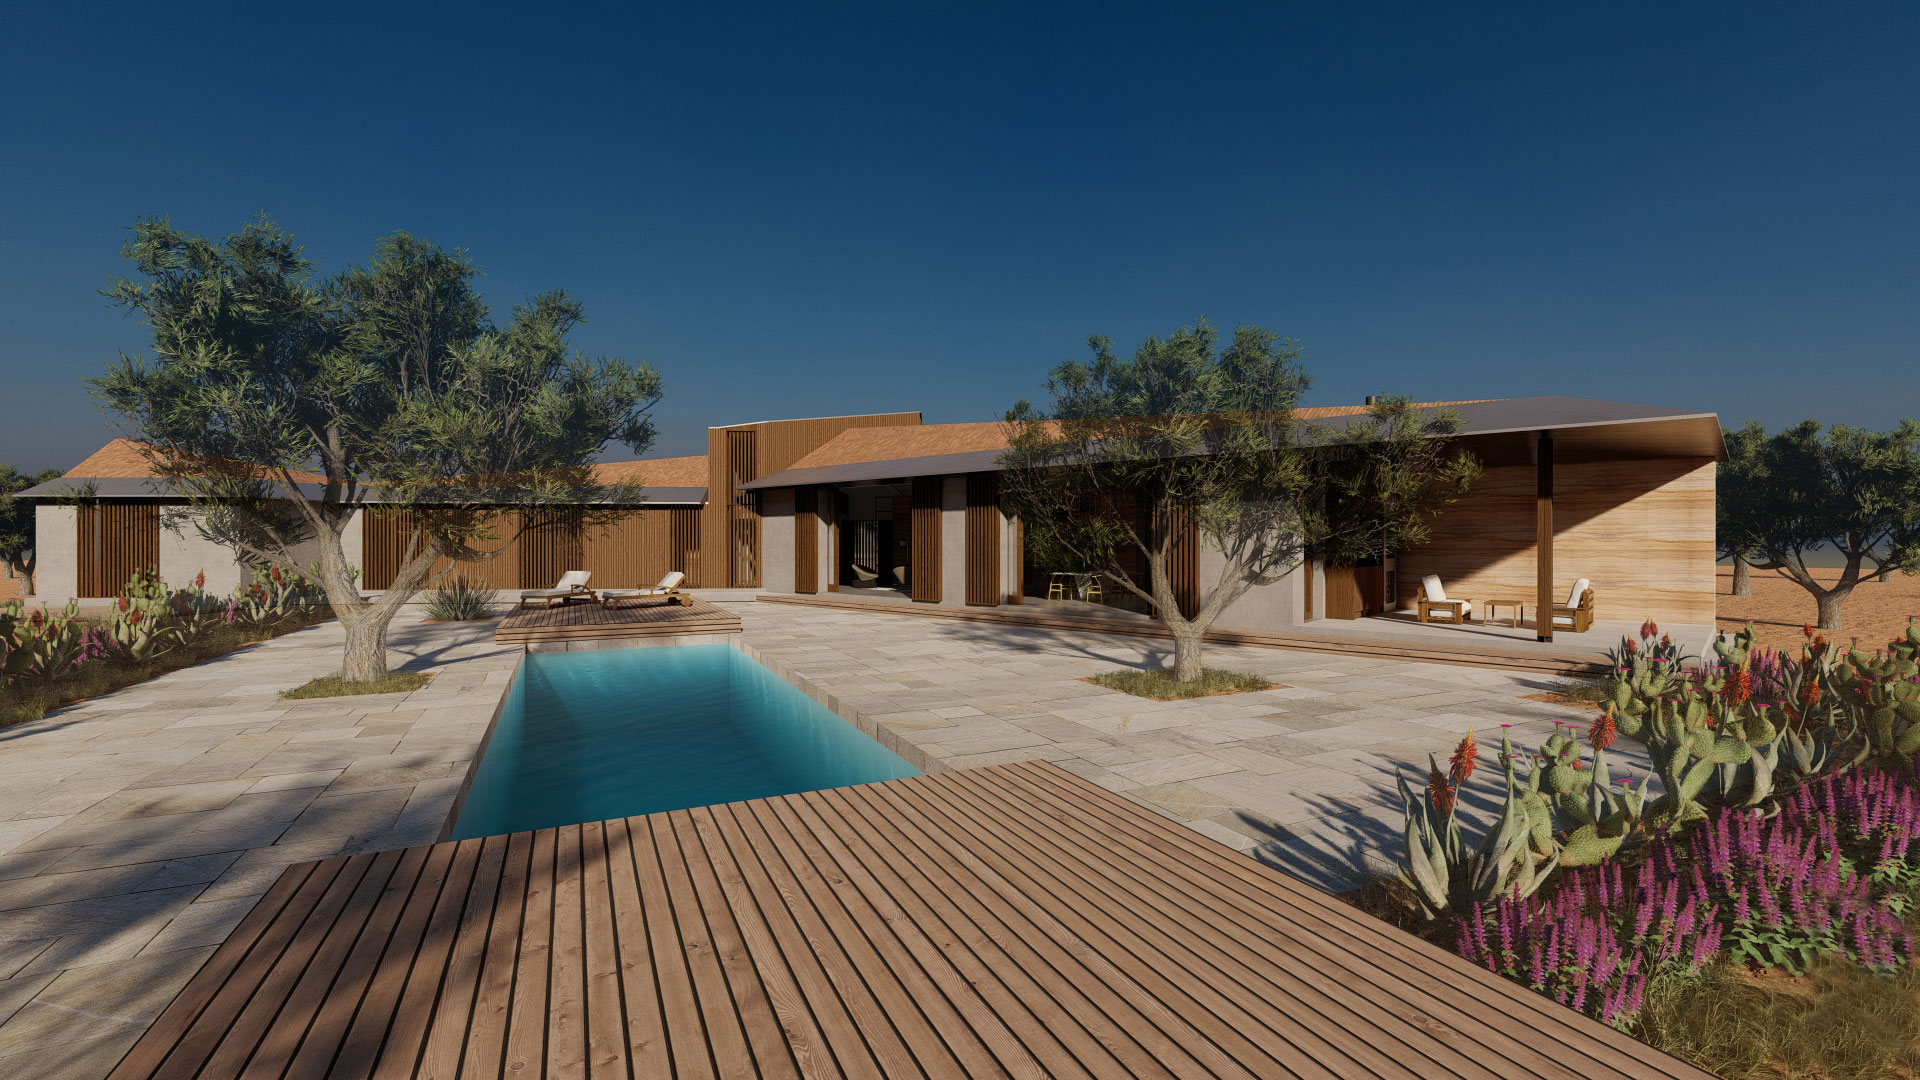 House Matarraña rammed earth wall